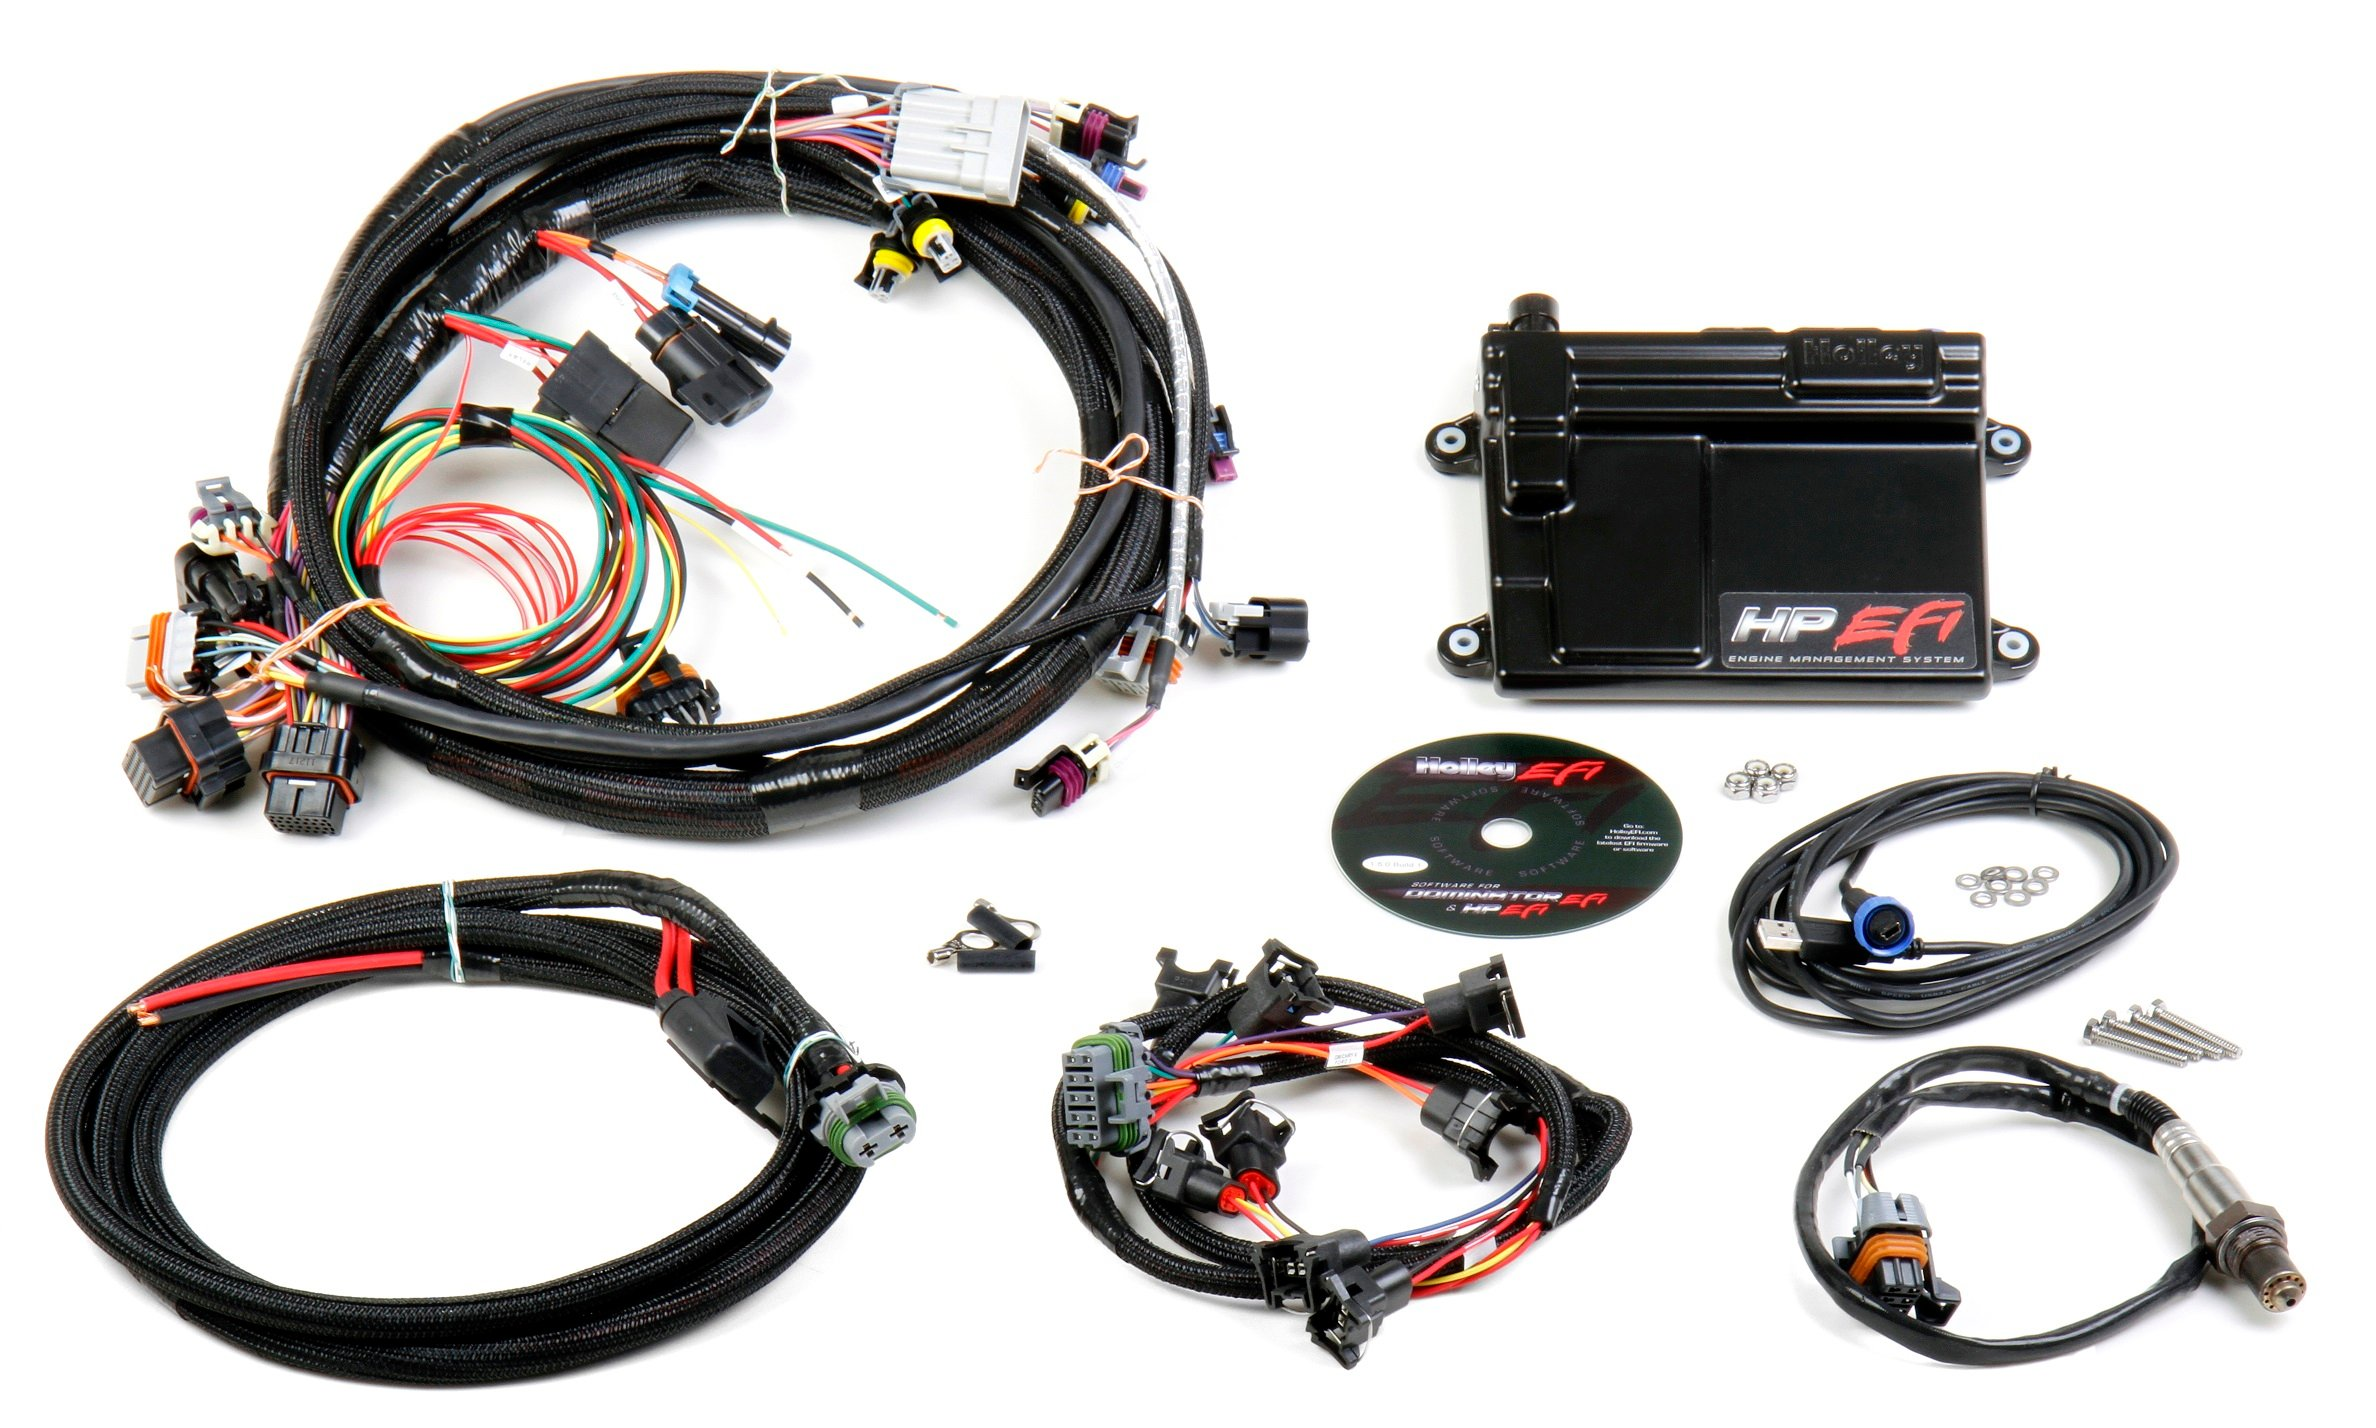 550 602 holley efi 550 602 hp efi ecu & harness kits Wire Harness Assembly at alyssarenee.co